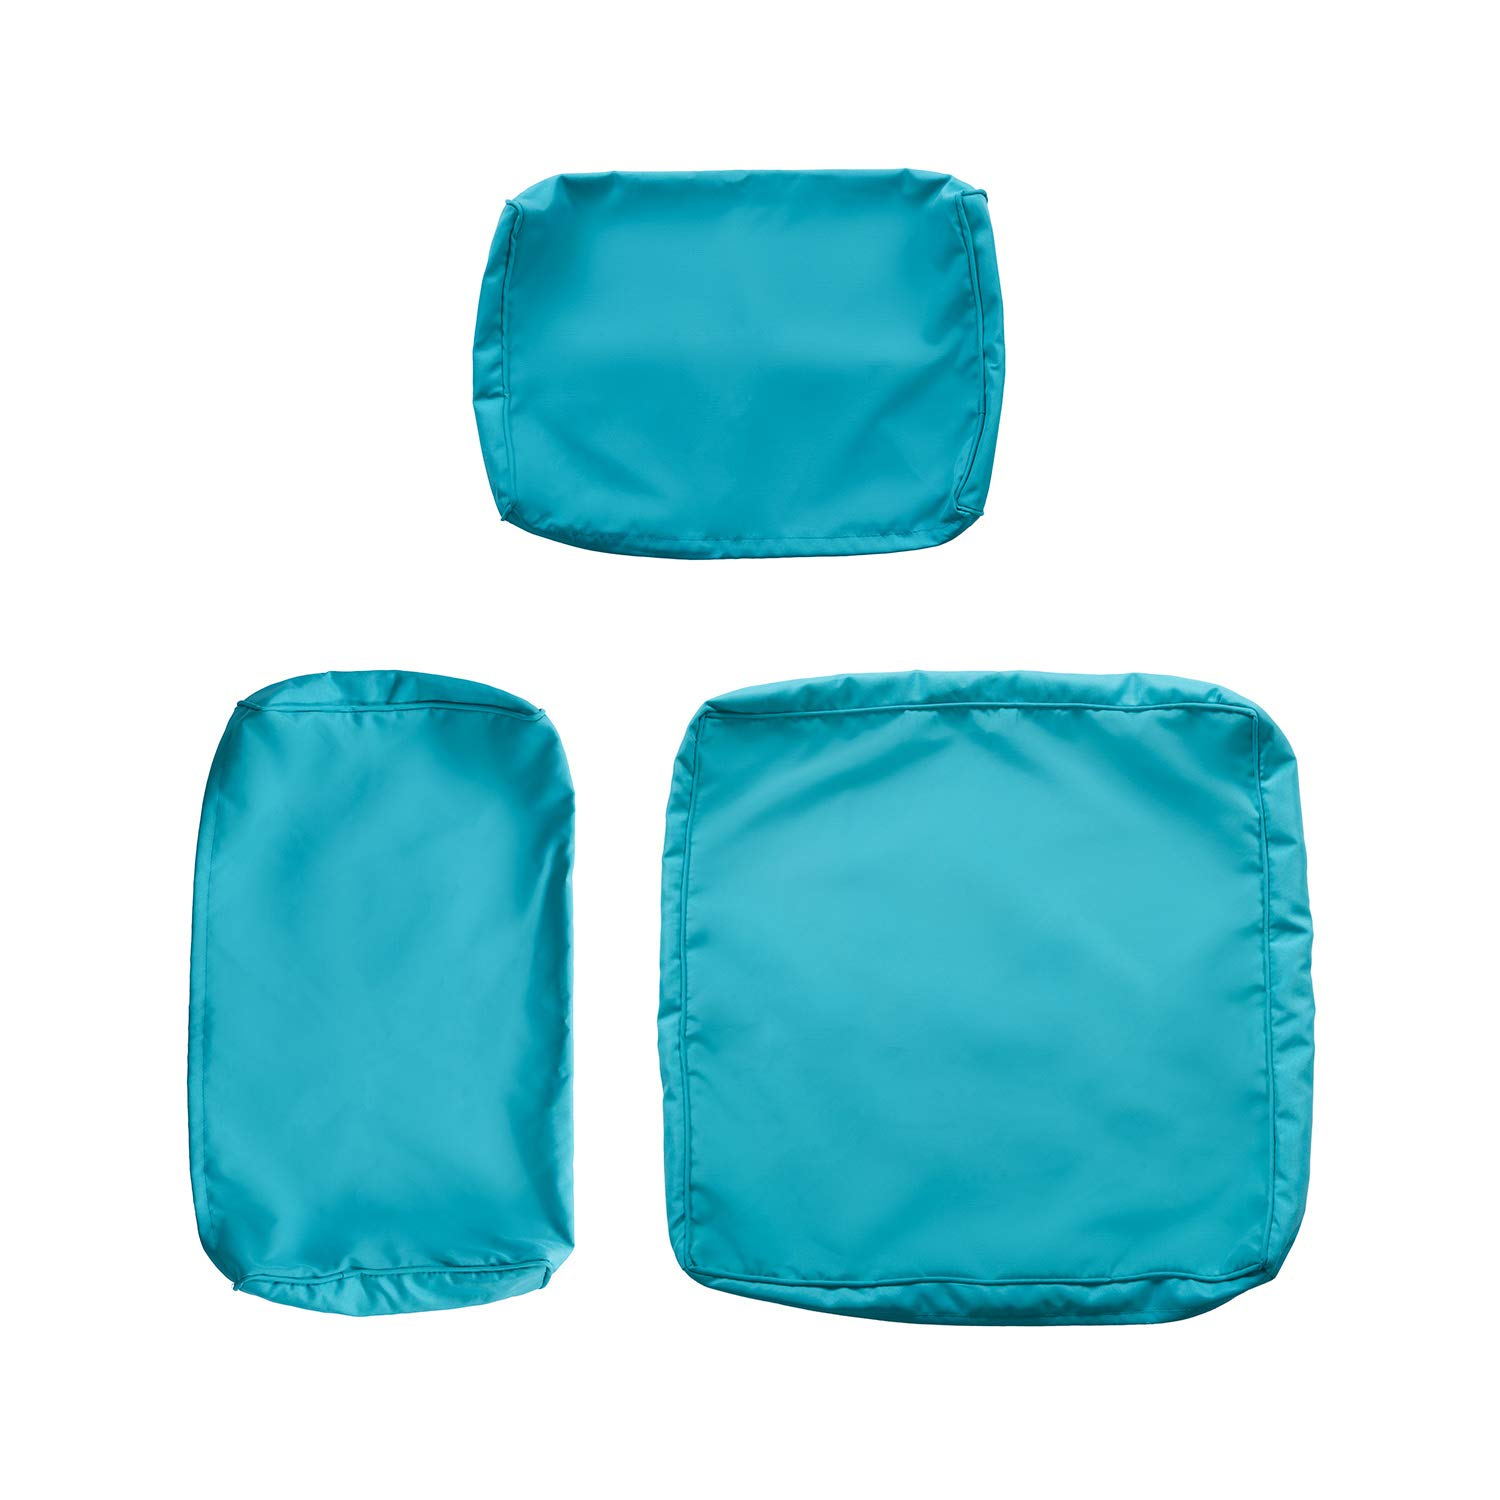 kinbor 7 pcs outdoor patio wicker sofa chair washable cushions pillow replacement covers for seat and back turquoise walmart com